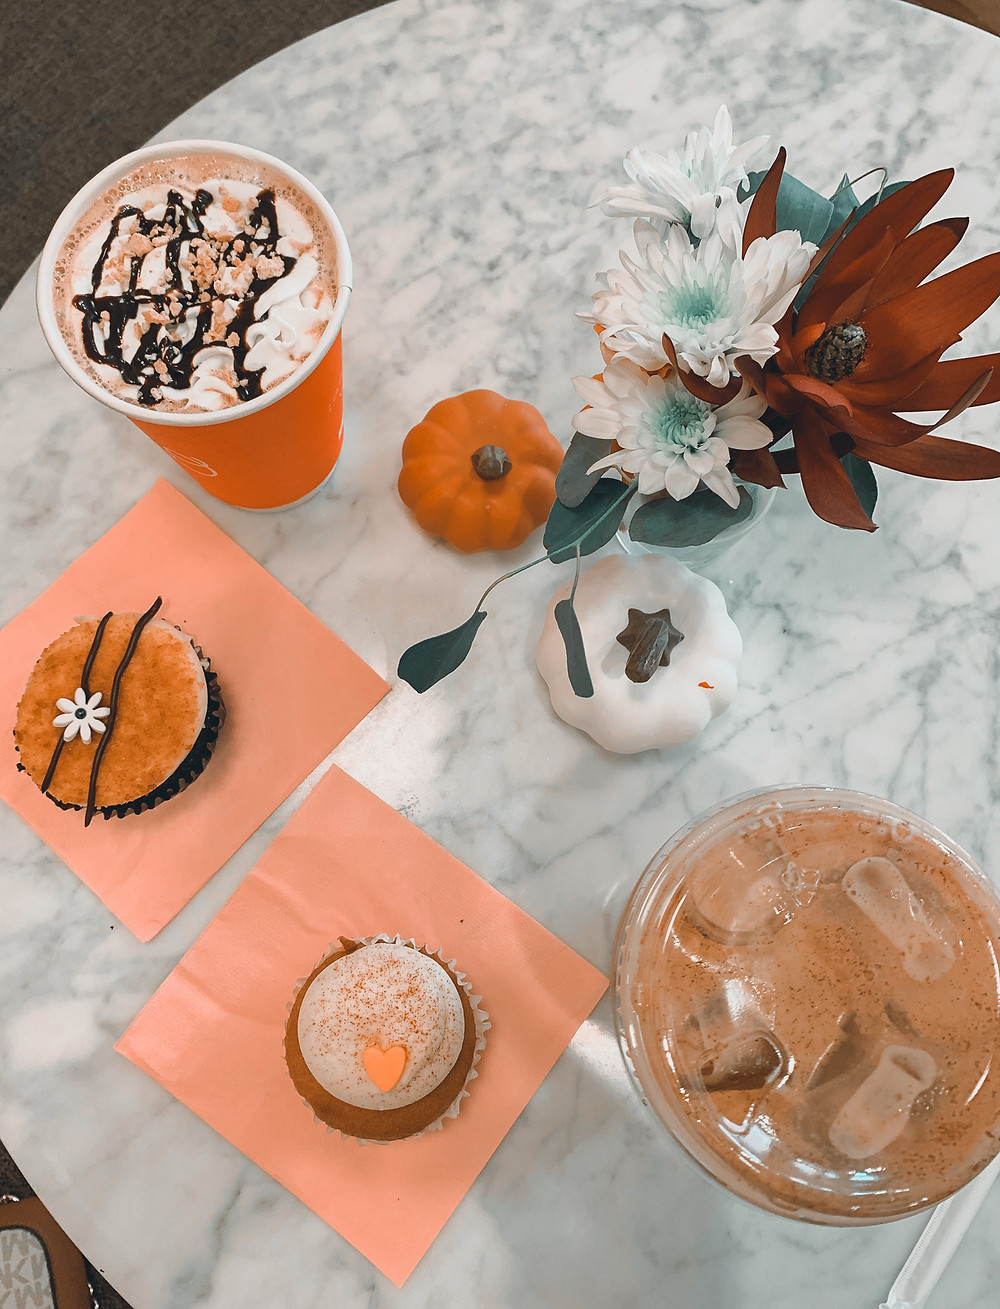 Lancaster Cupcake, coffees, s'mores latte, iced pumpkin spice latter, mini pumpkins, flowers in small vase, pink napkins, cupcakes